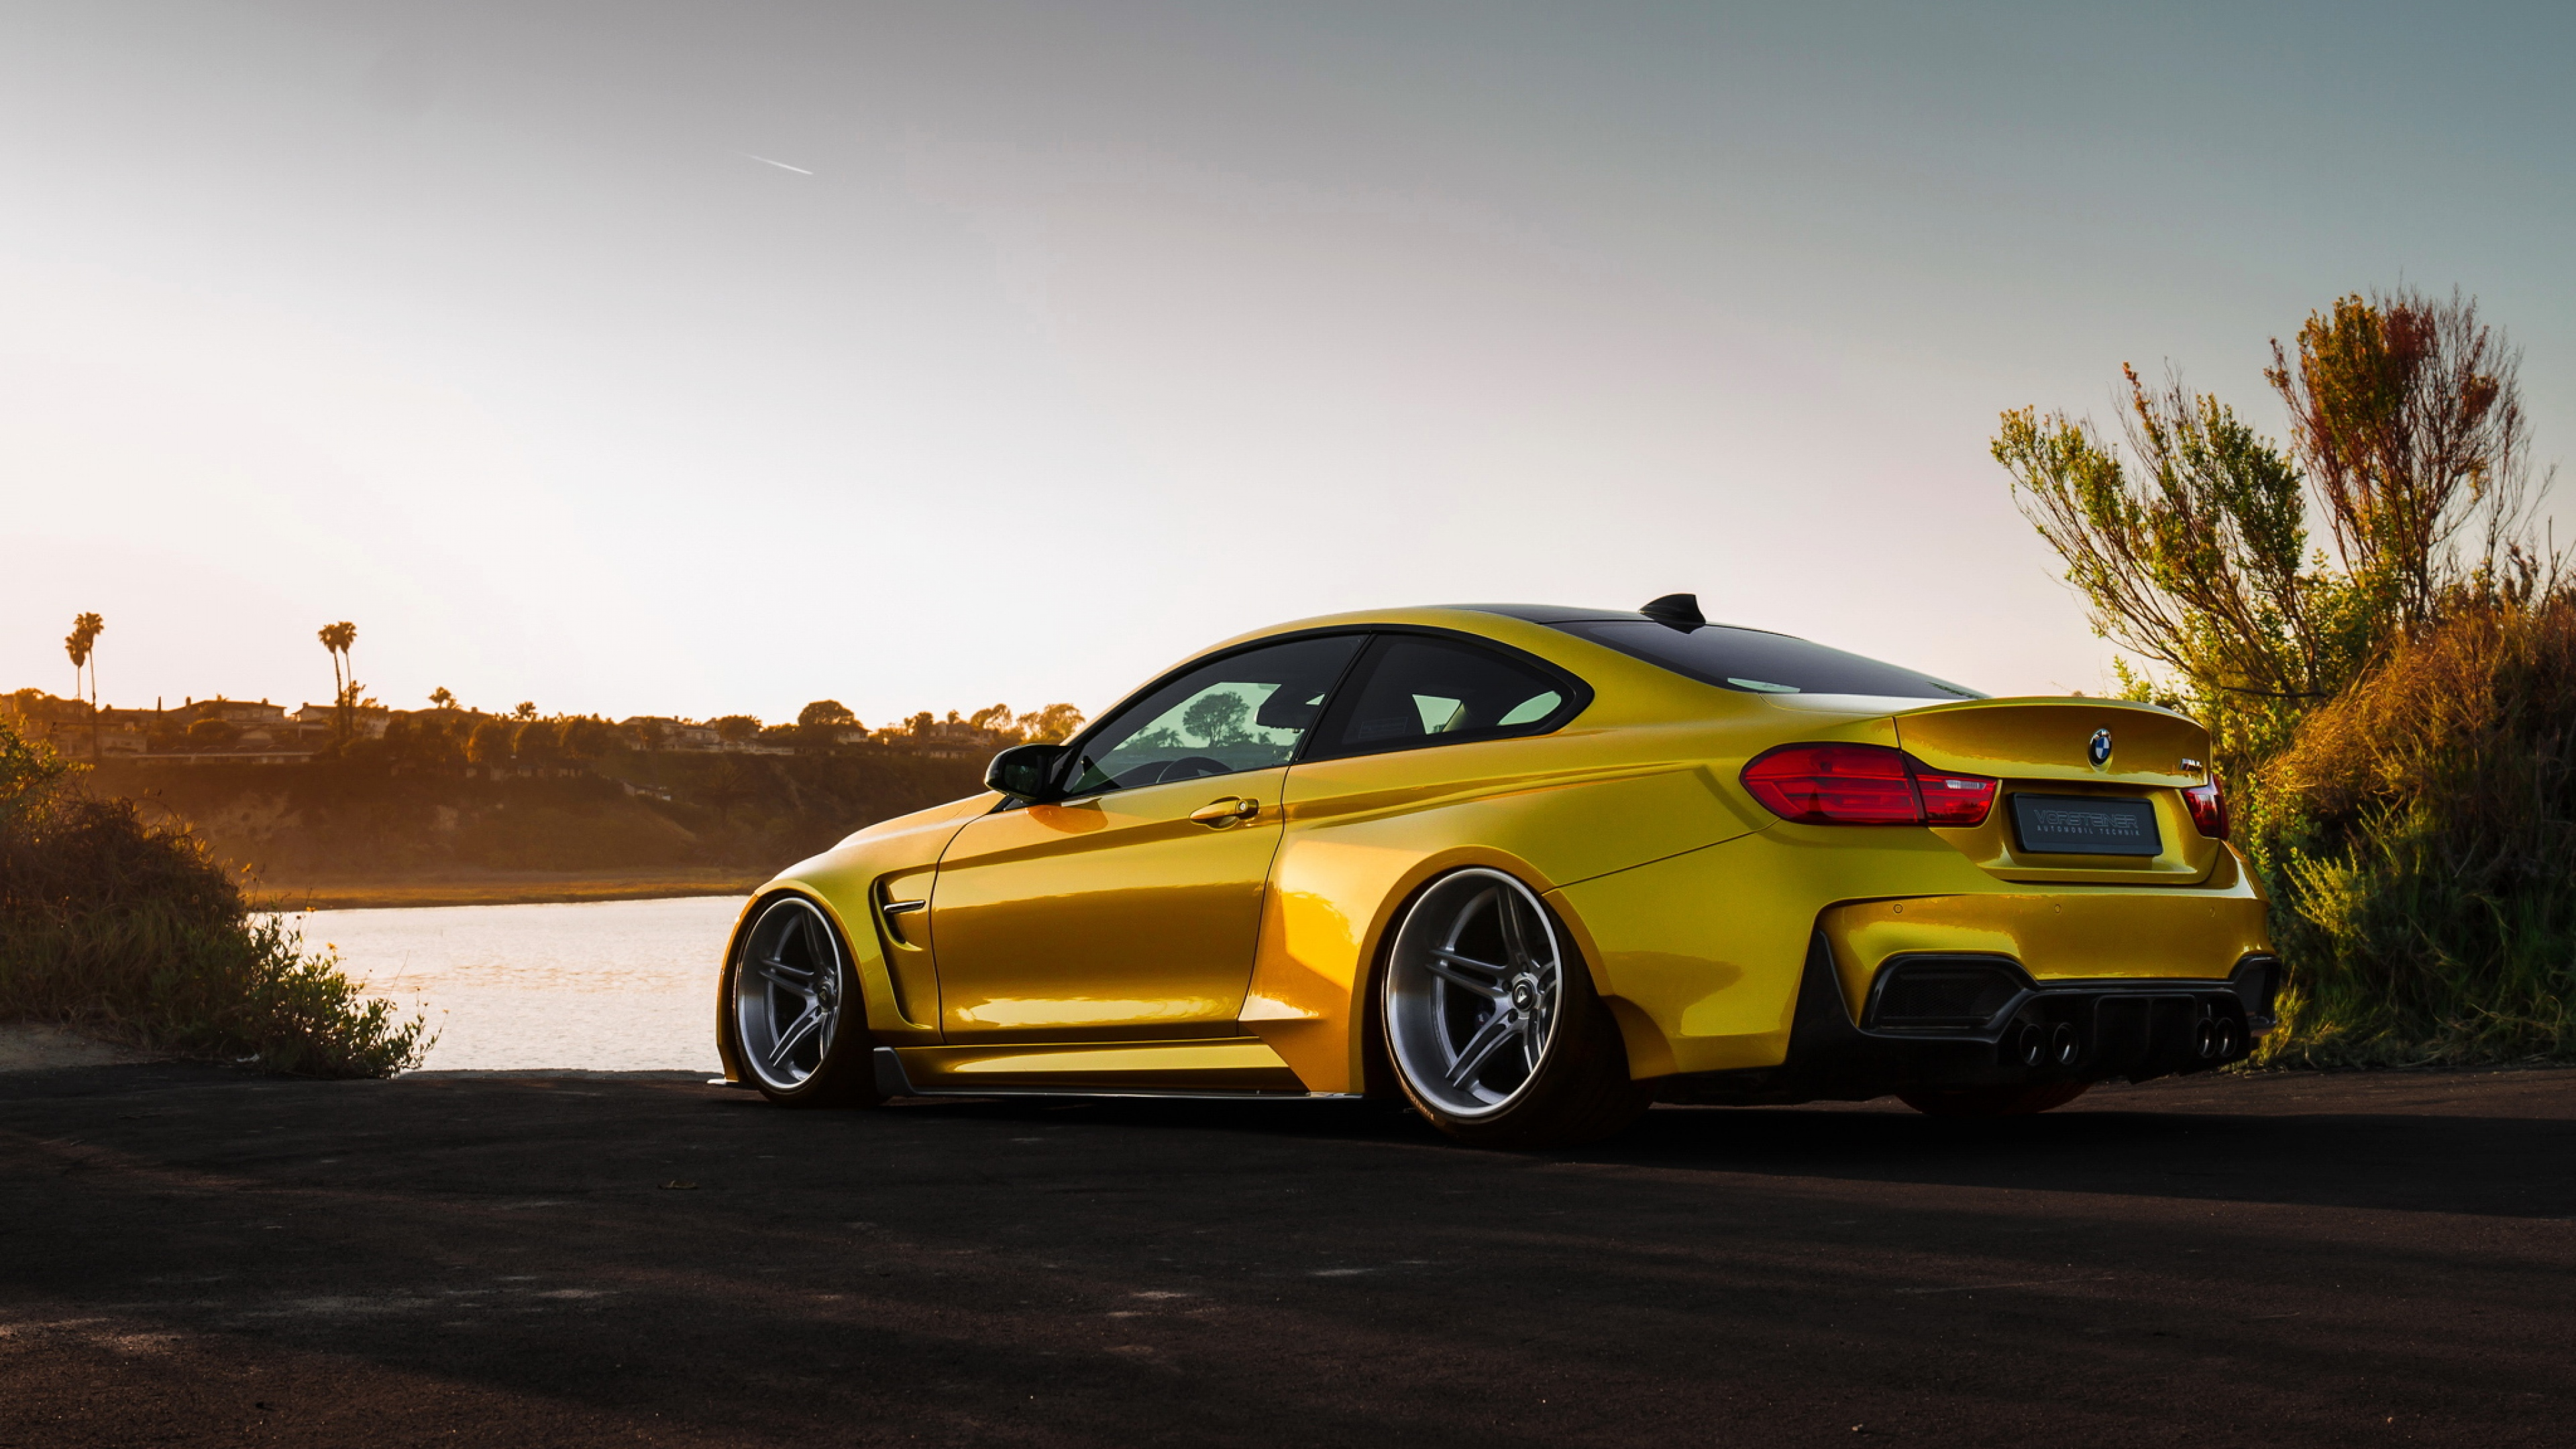 Bmw M4 Vorsteiner Gold Hd Cars 4k Wallpapers Images 2119932 Hd Wallpaper Backgrounds Download